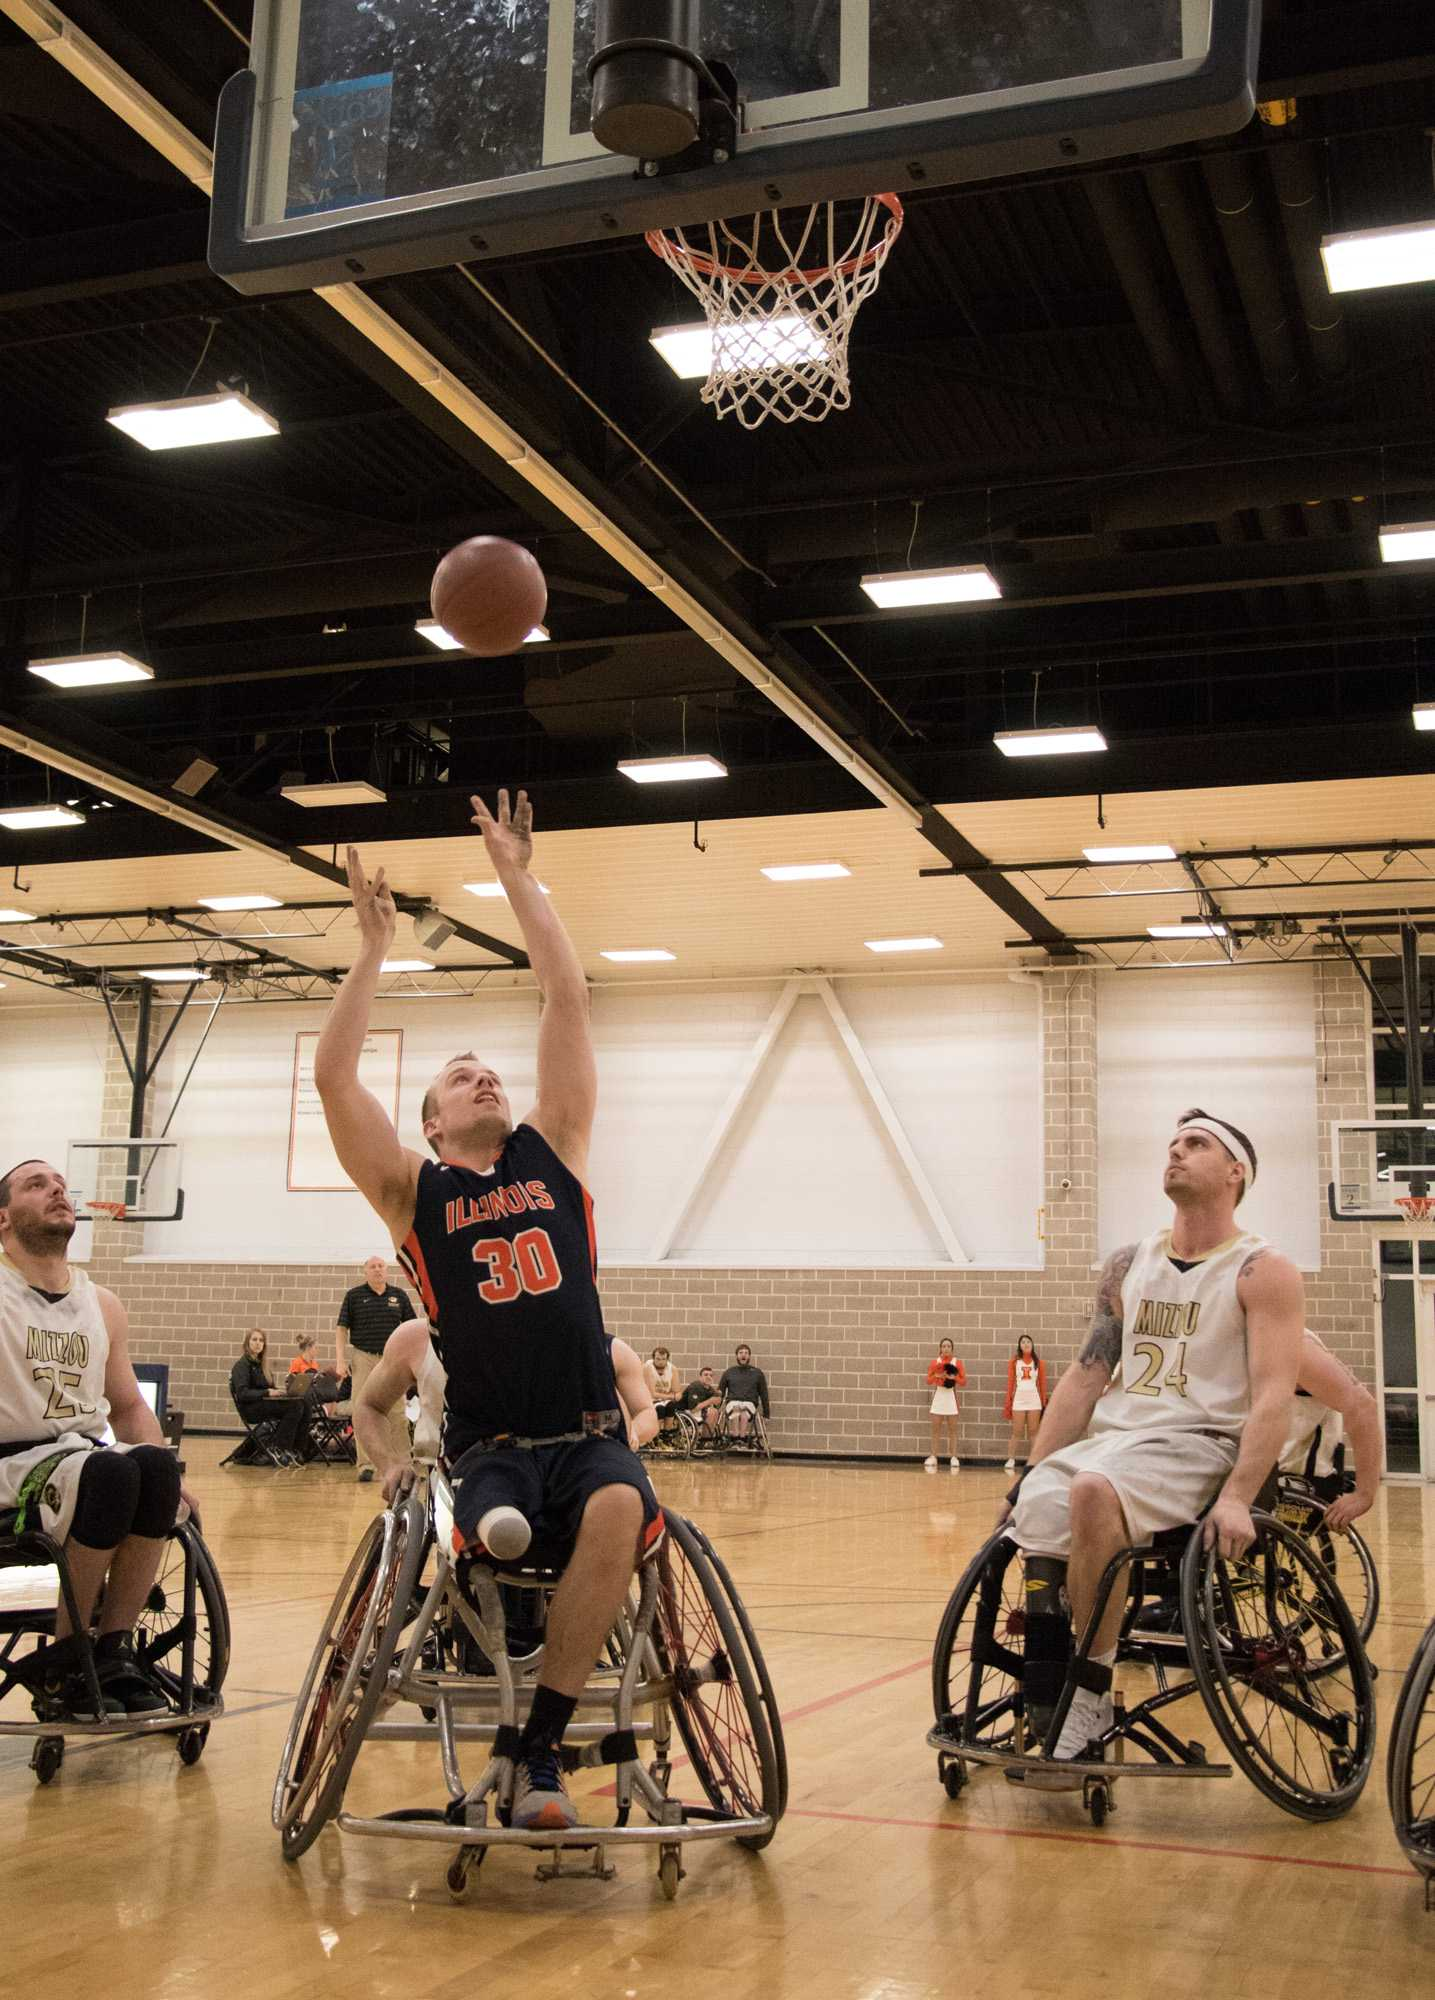 Illinois' Derek Hoot (30) attempts a shot during the wheelchair basketball game v. Missouri at the ARC on Friday, Feb. 13, 2015. Illinois won 53-46.